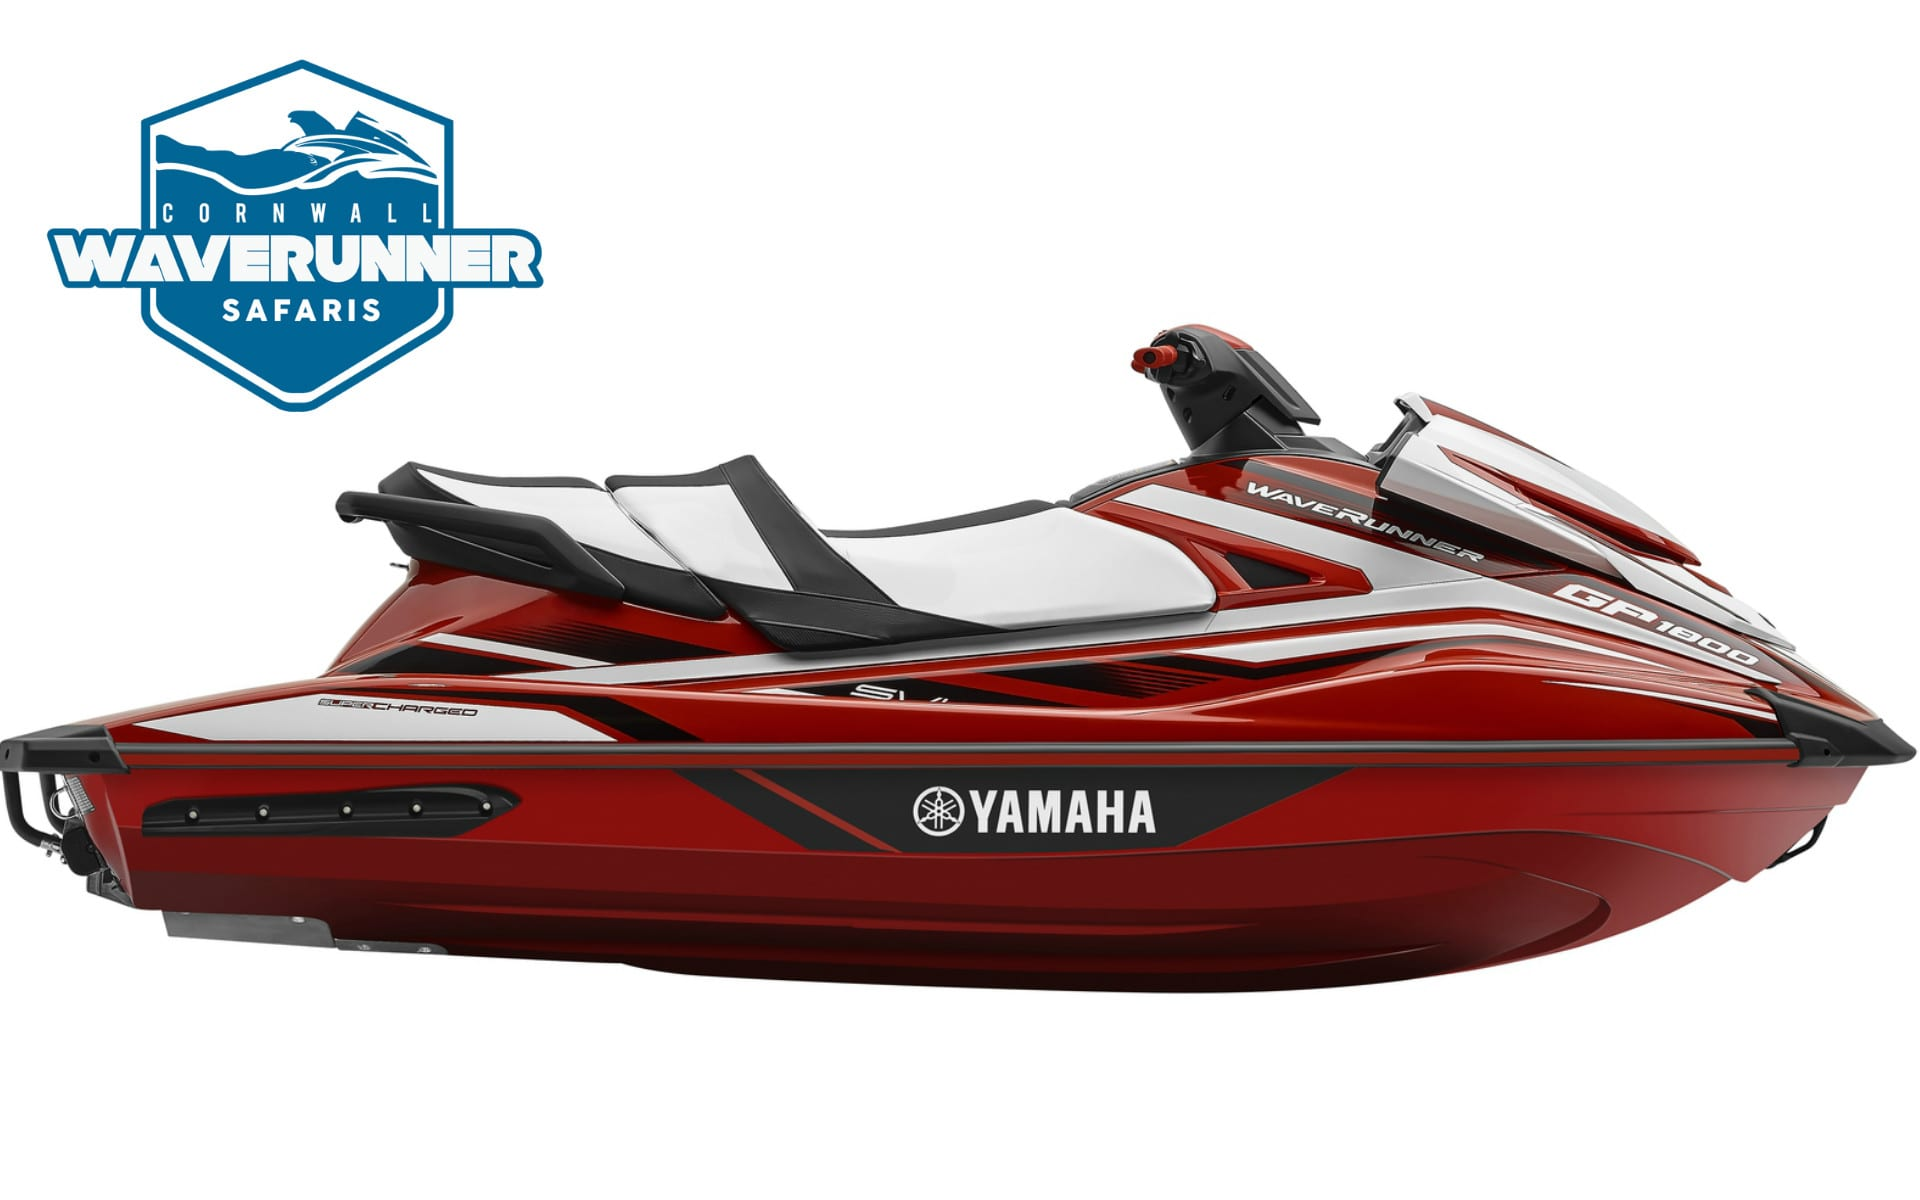 New Yamaha Jet Ski Price